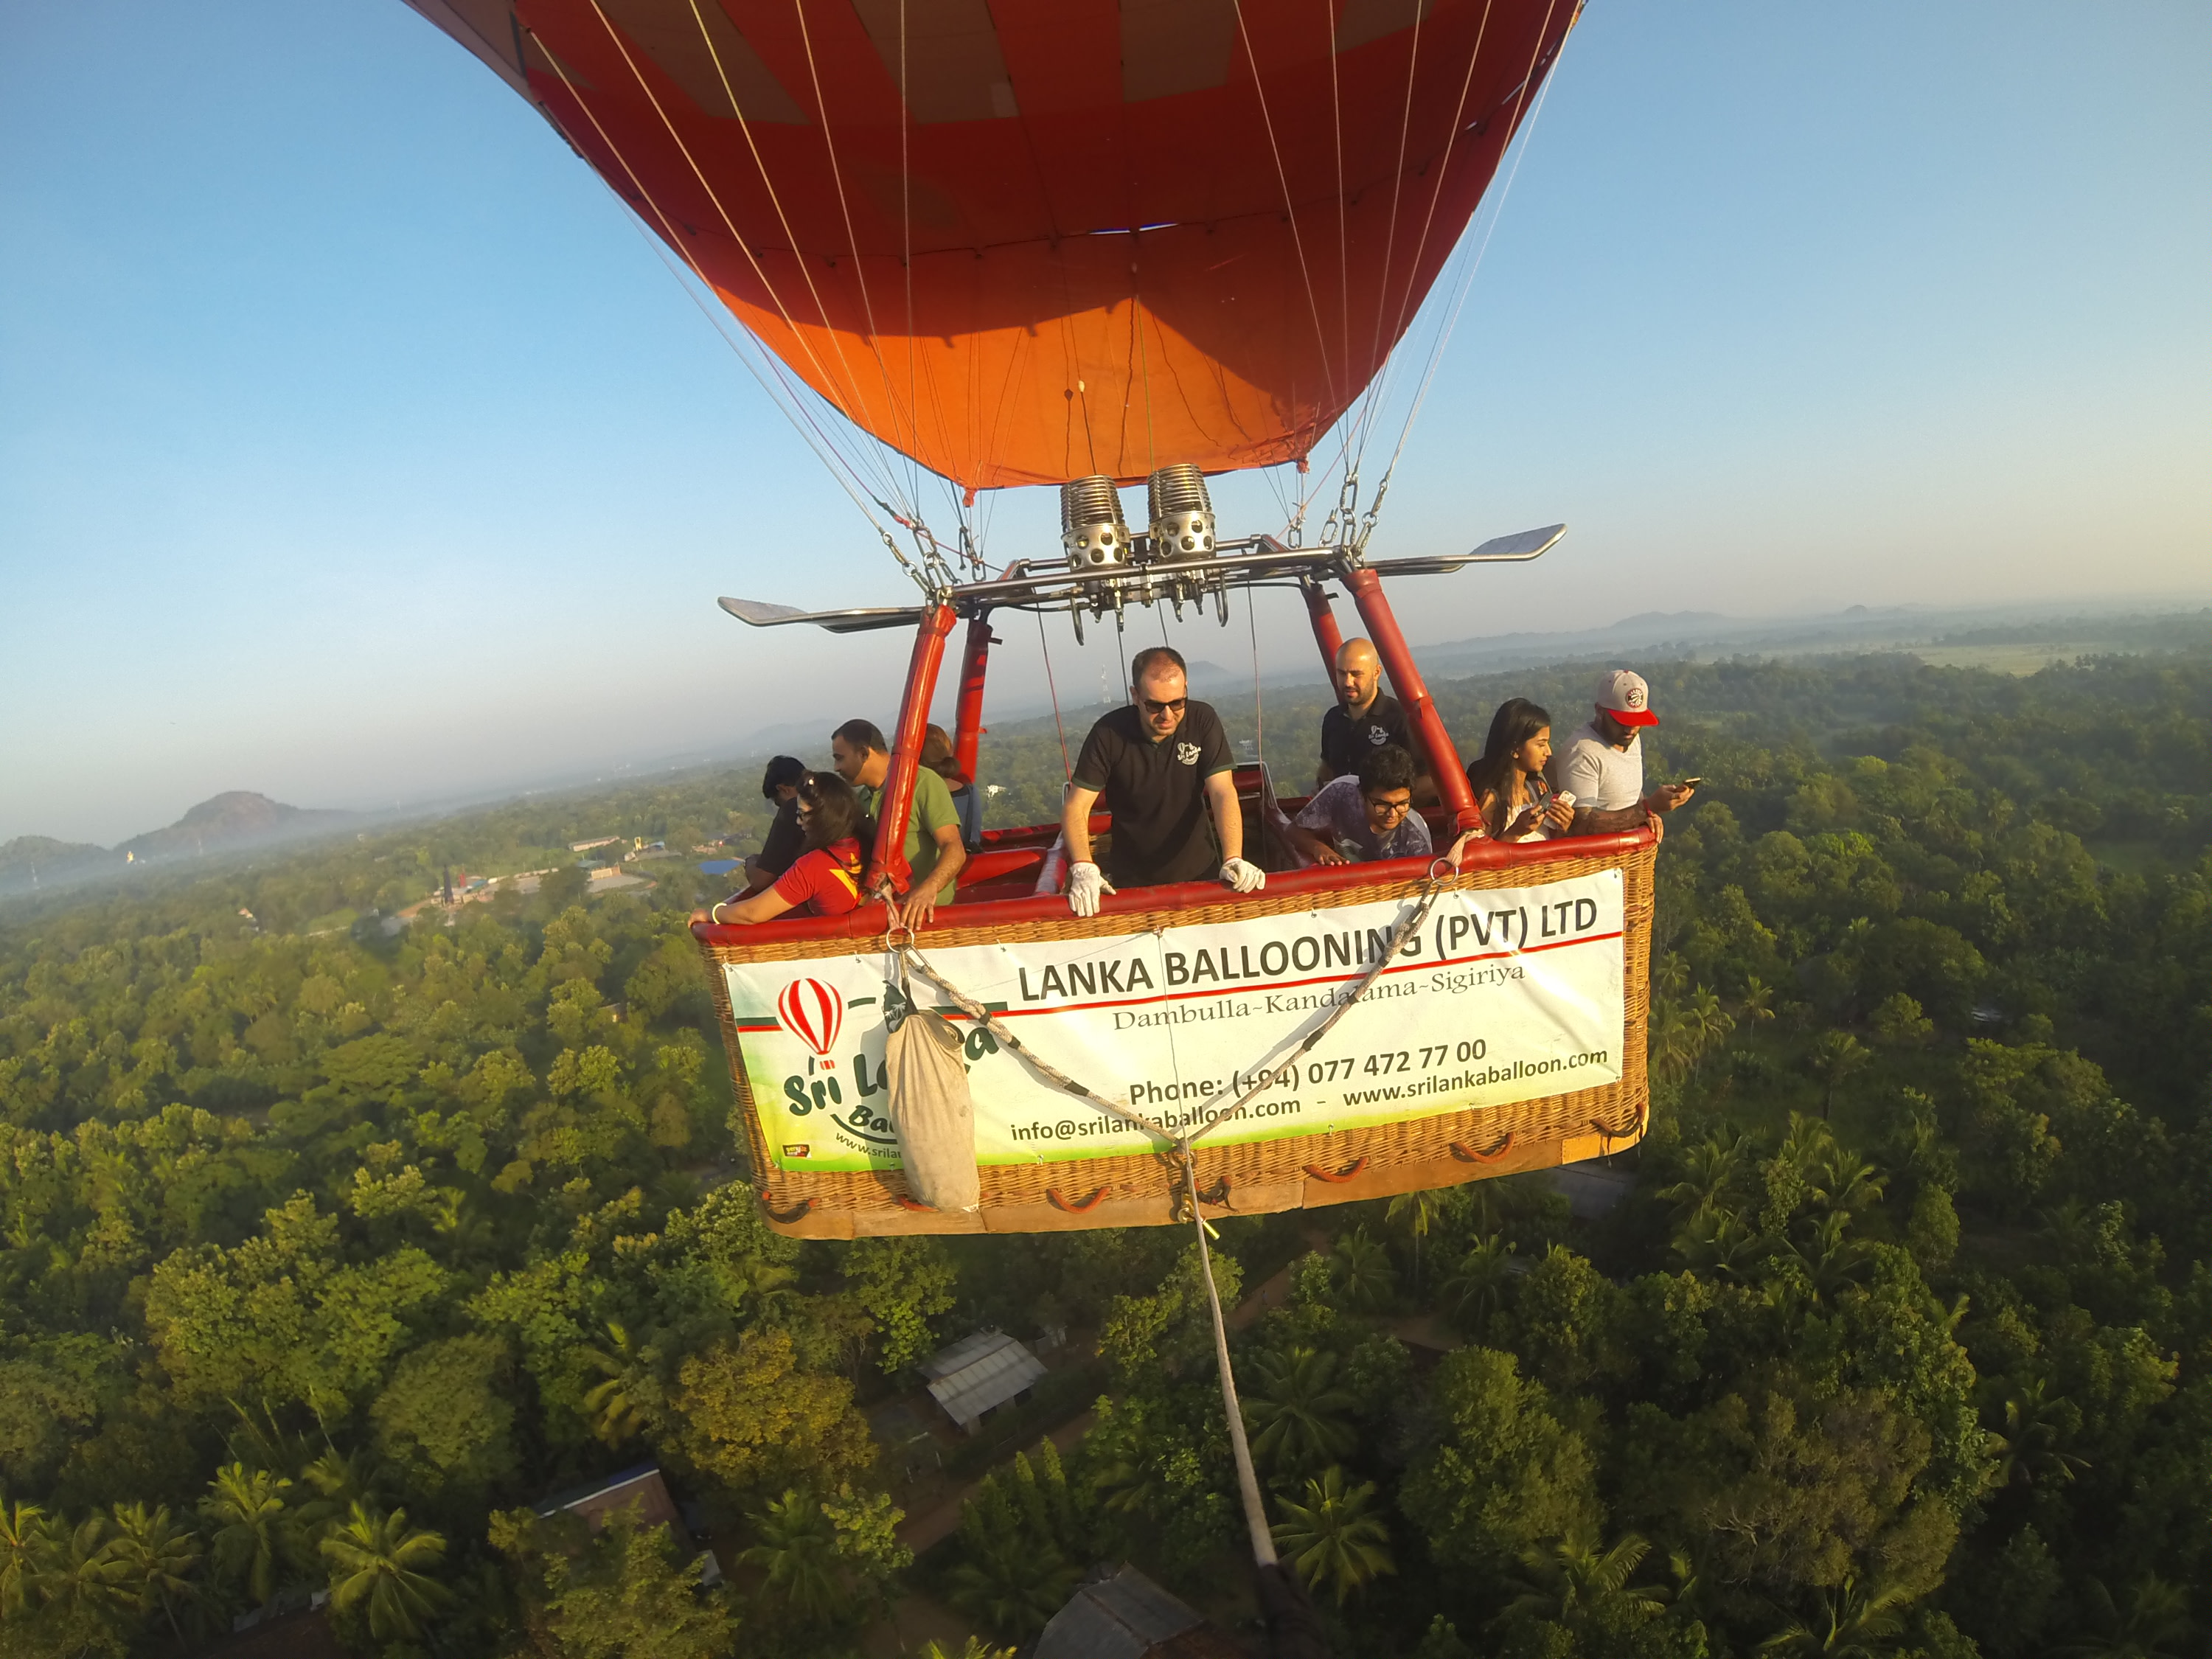 Excursions from Dambulla